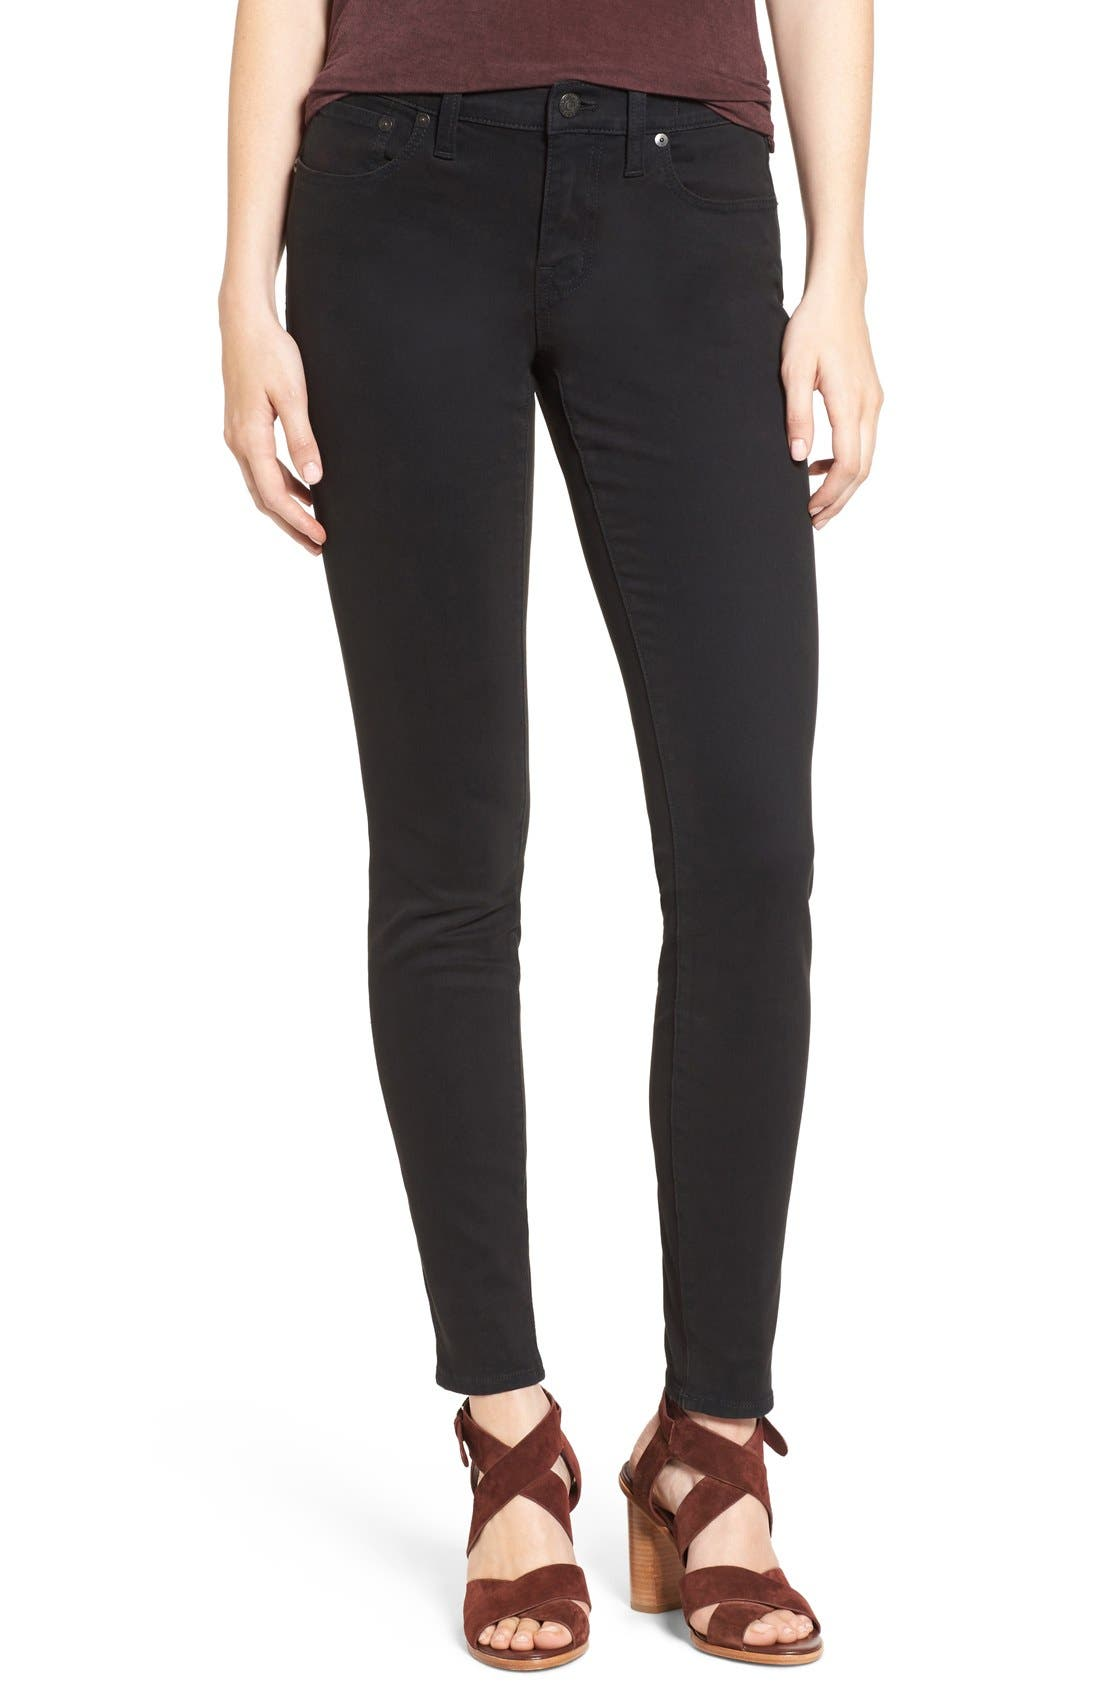 MADEWELL, Garment Dyed Skinny Jeans, Main thumbnail 1, color, 001